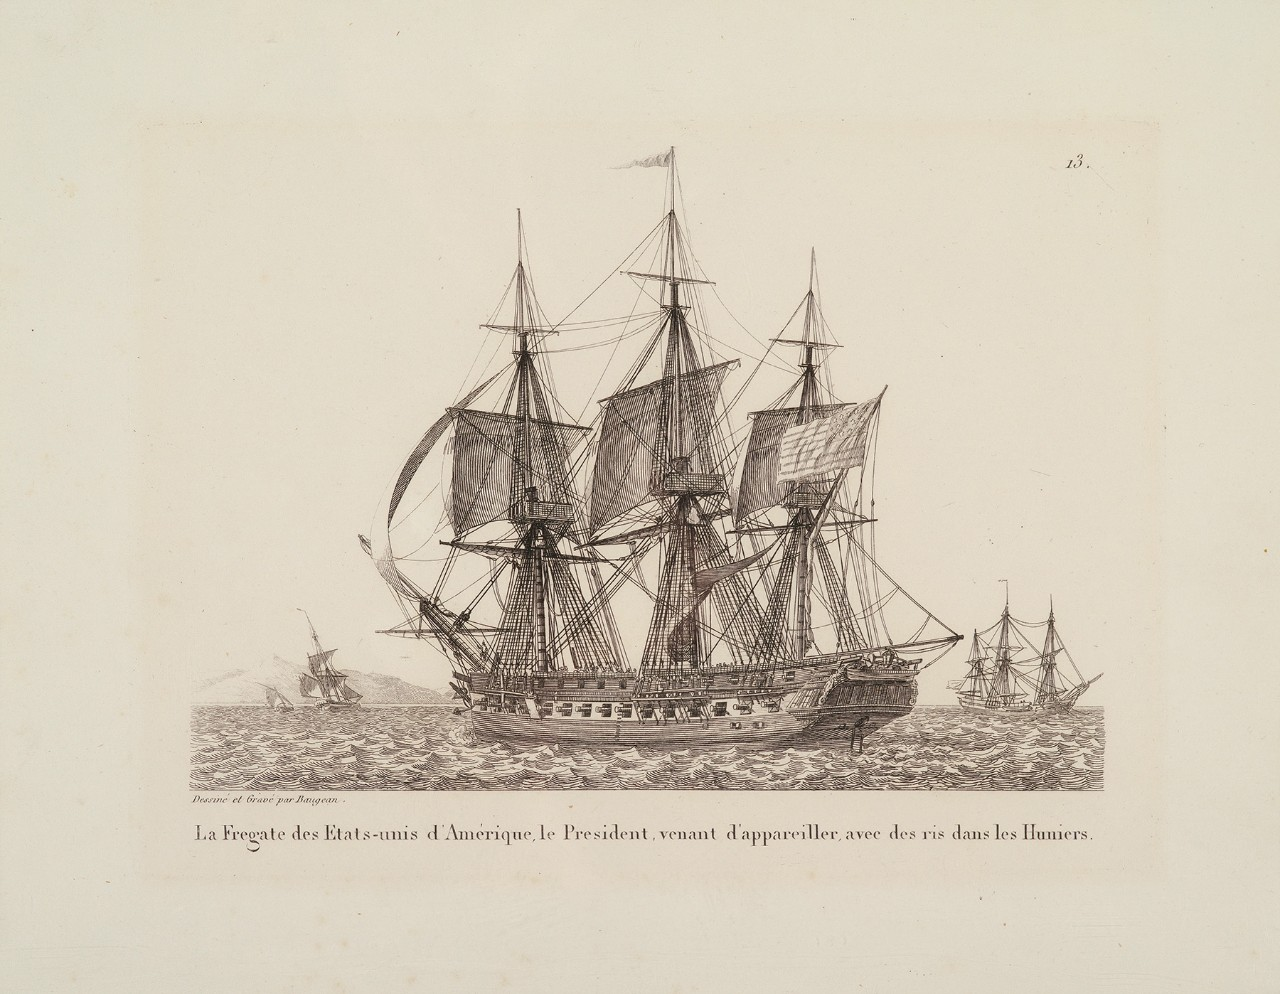 A port side view of a sailing ship, three other ships in the background